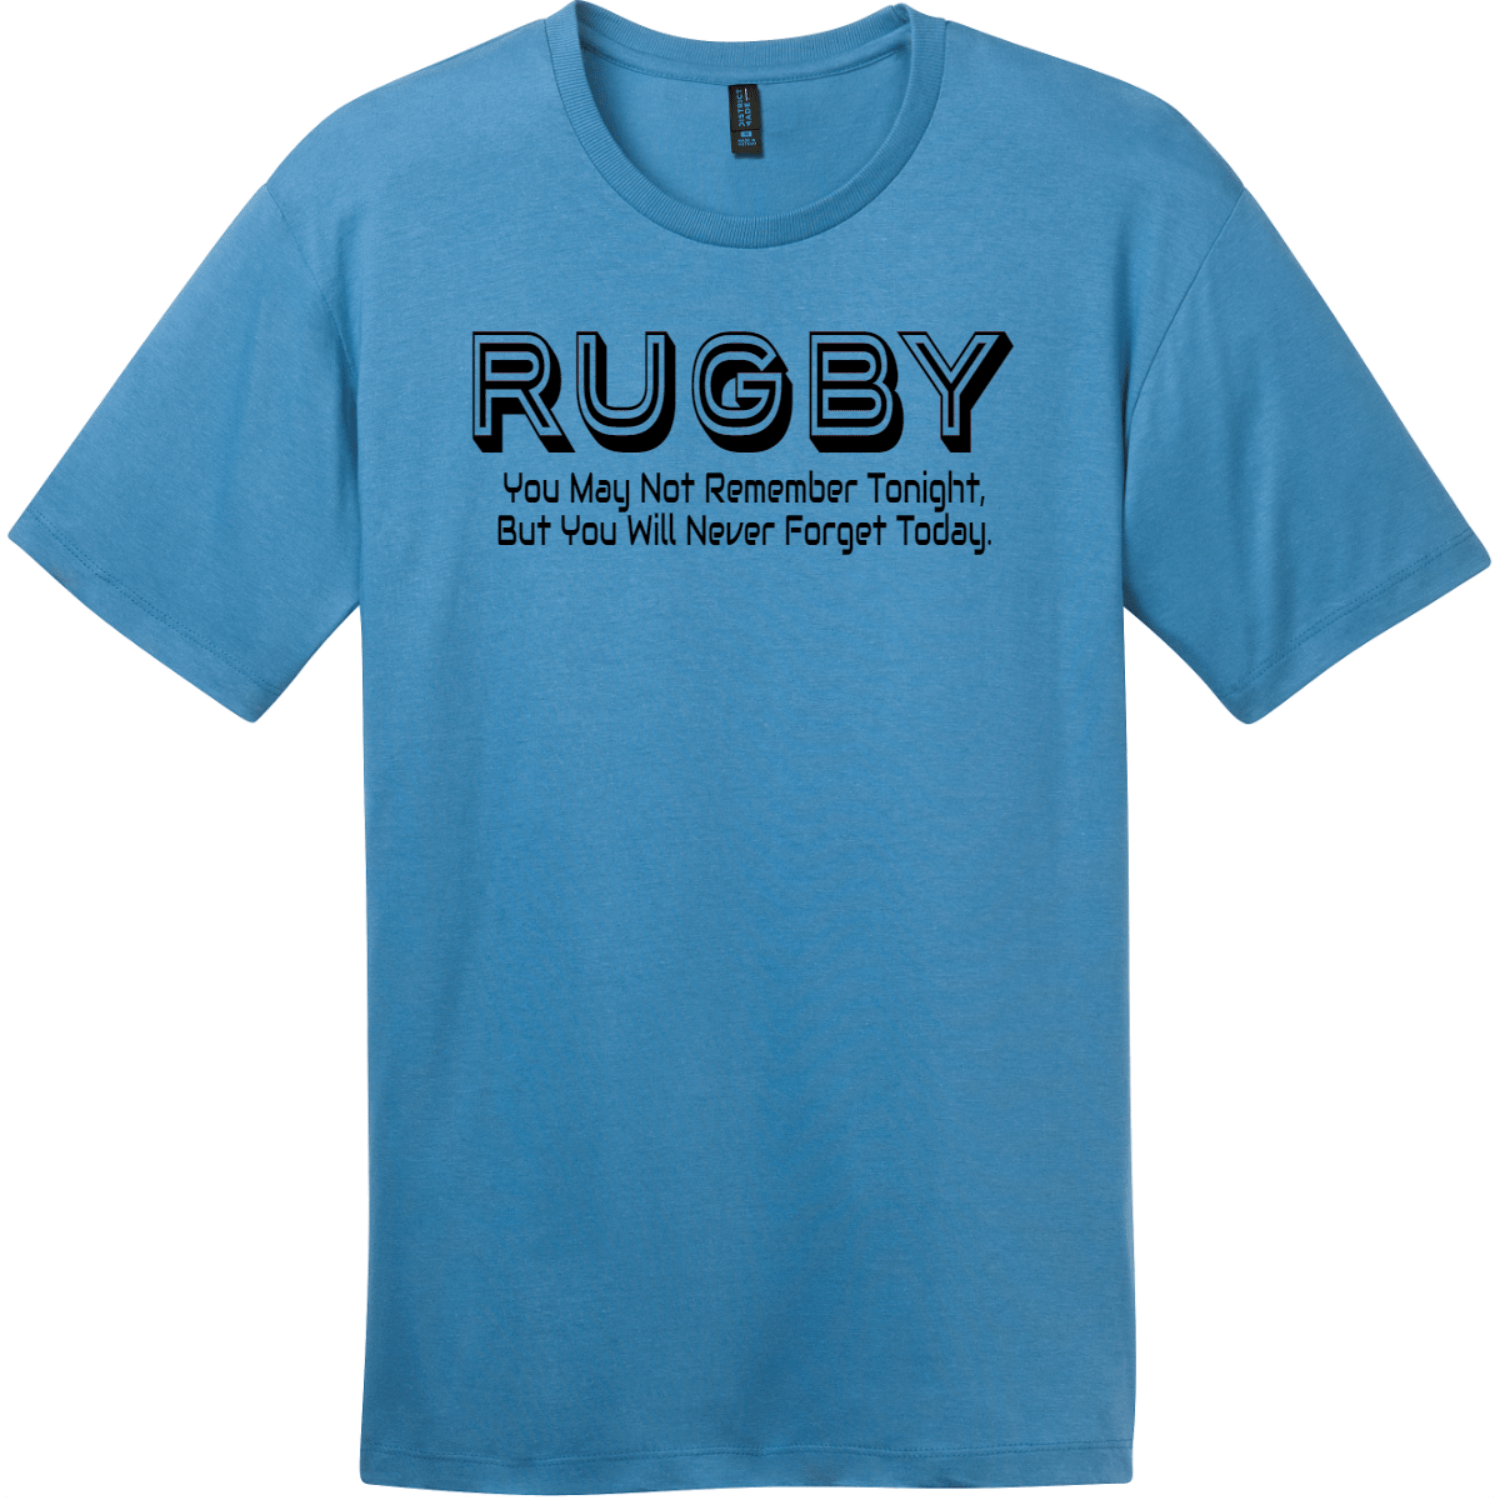 Rugby You May Not Remember Tonight T-Shirt Clean Denim District Perfect Weight Tee DT104